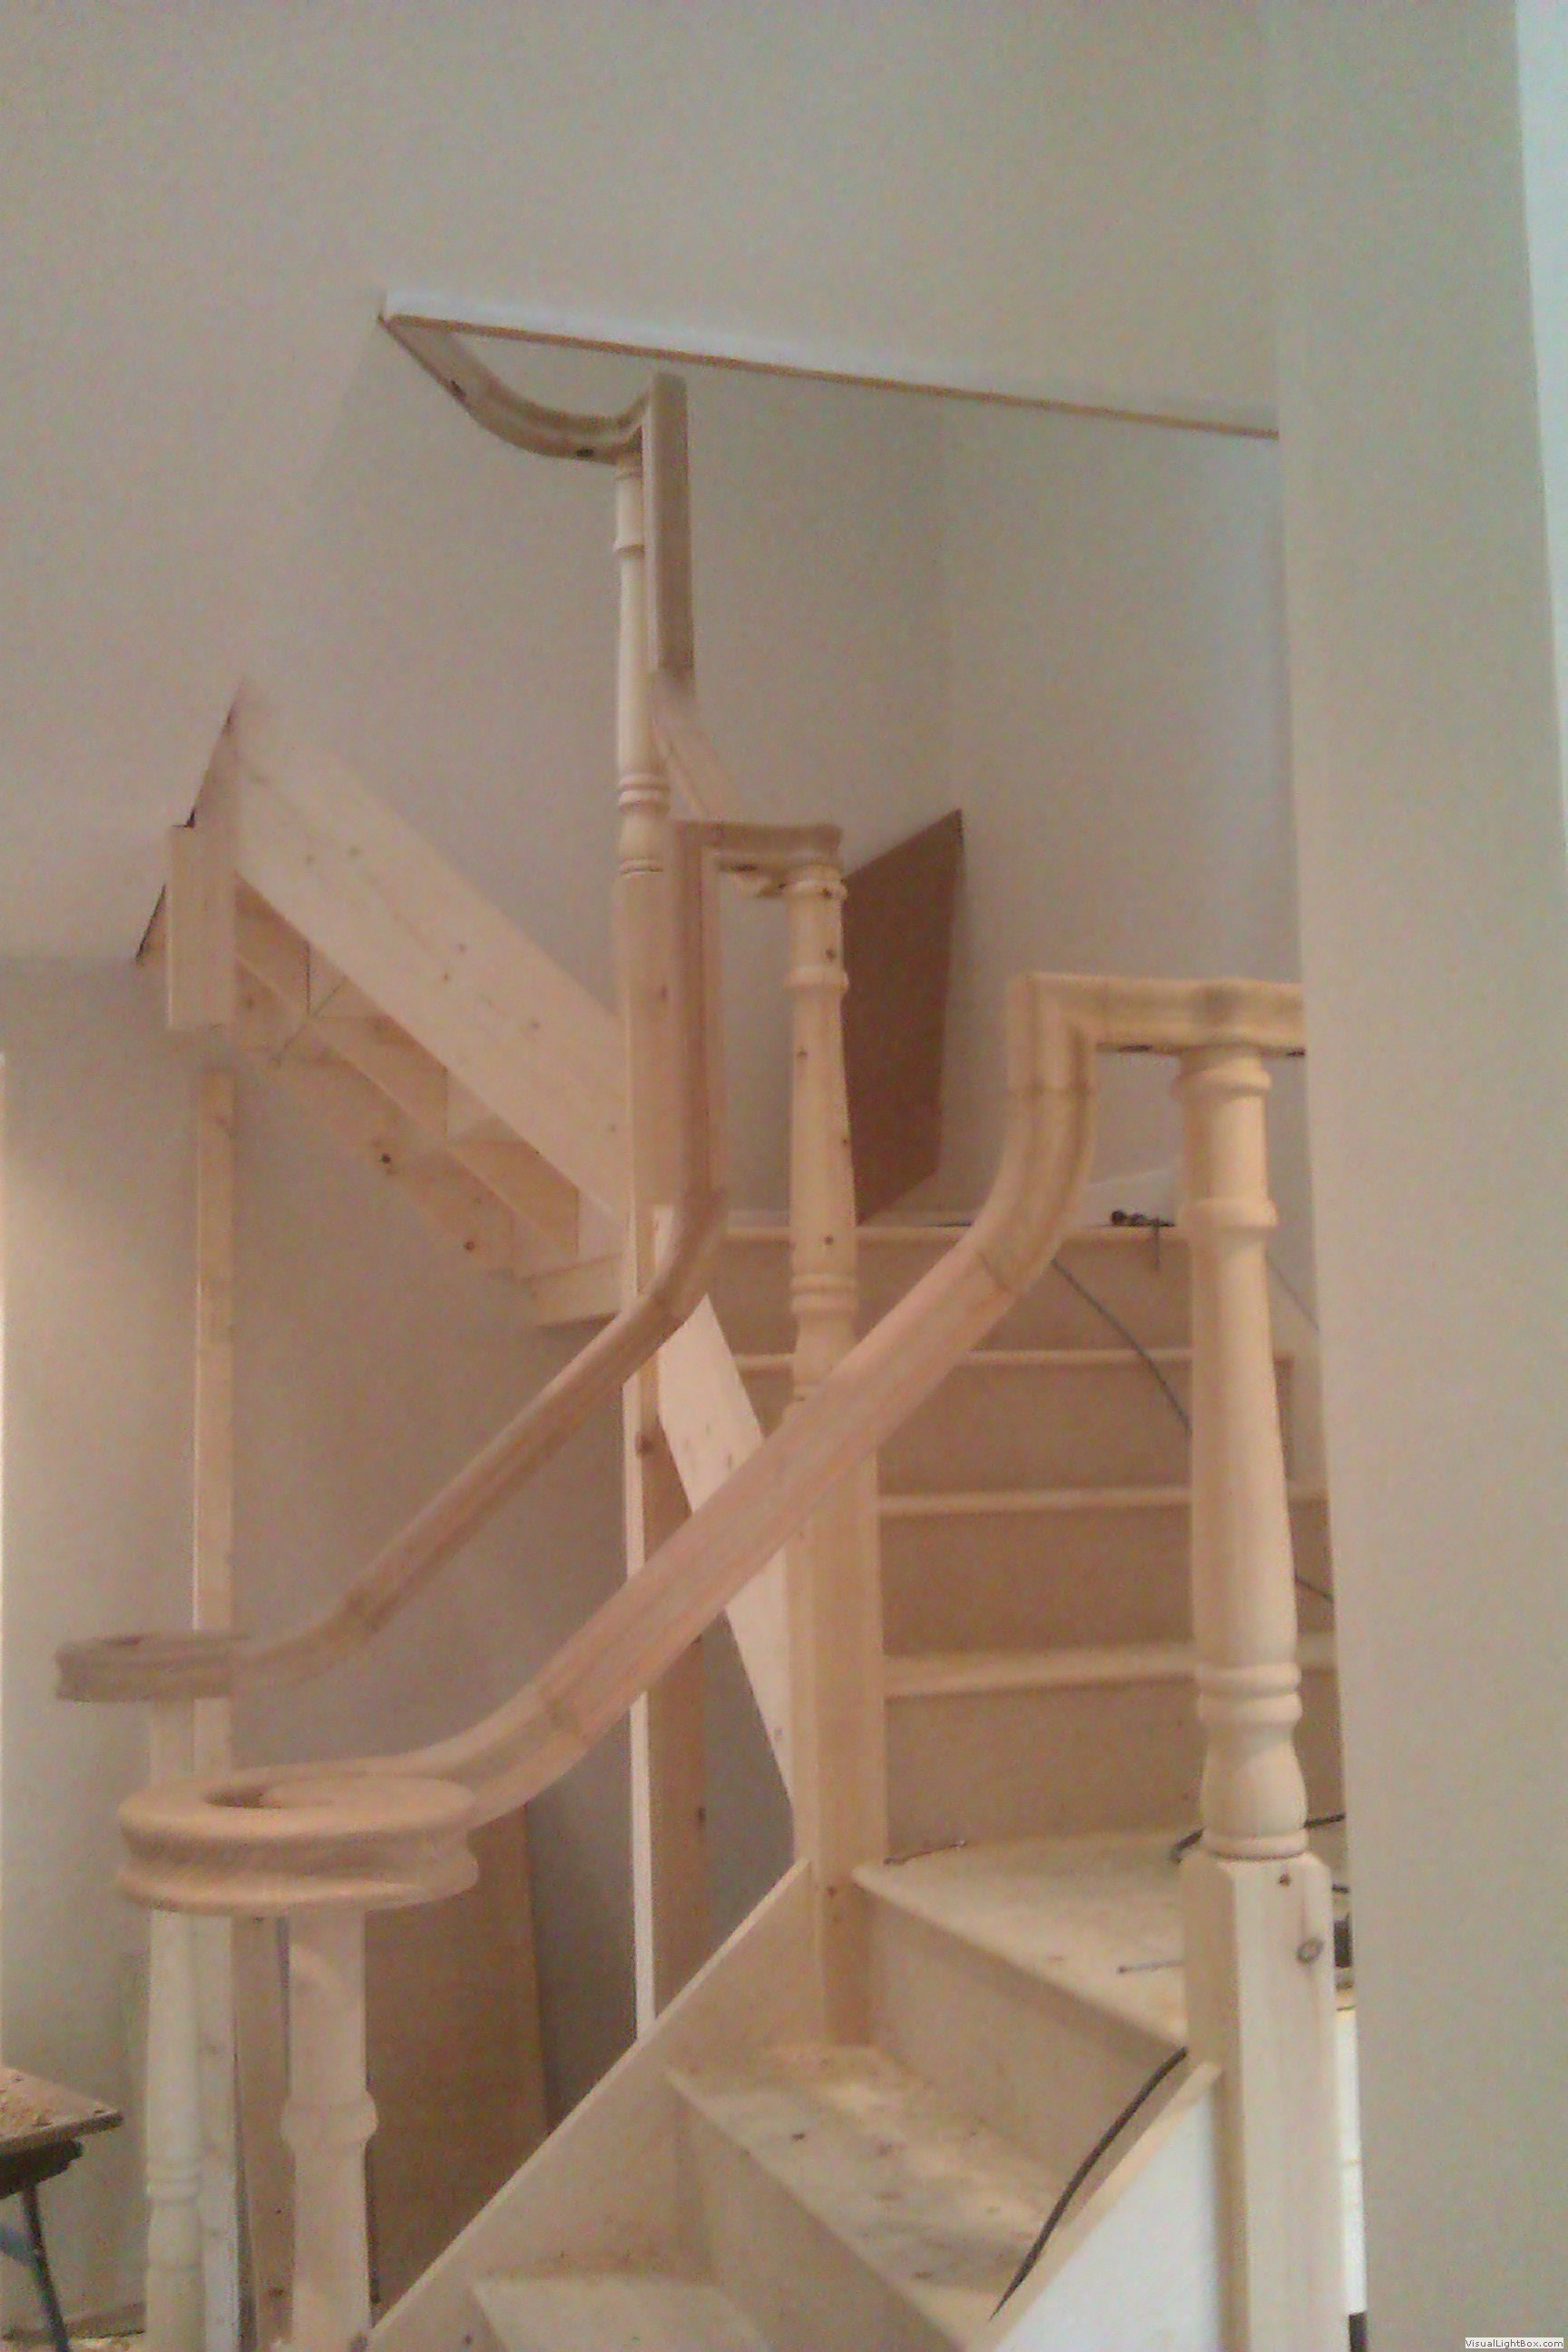 Superieur Wood Staircase 1 Wood Staircase 2 ...